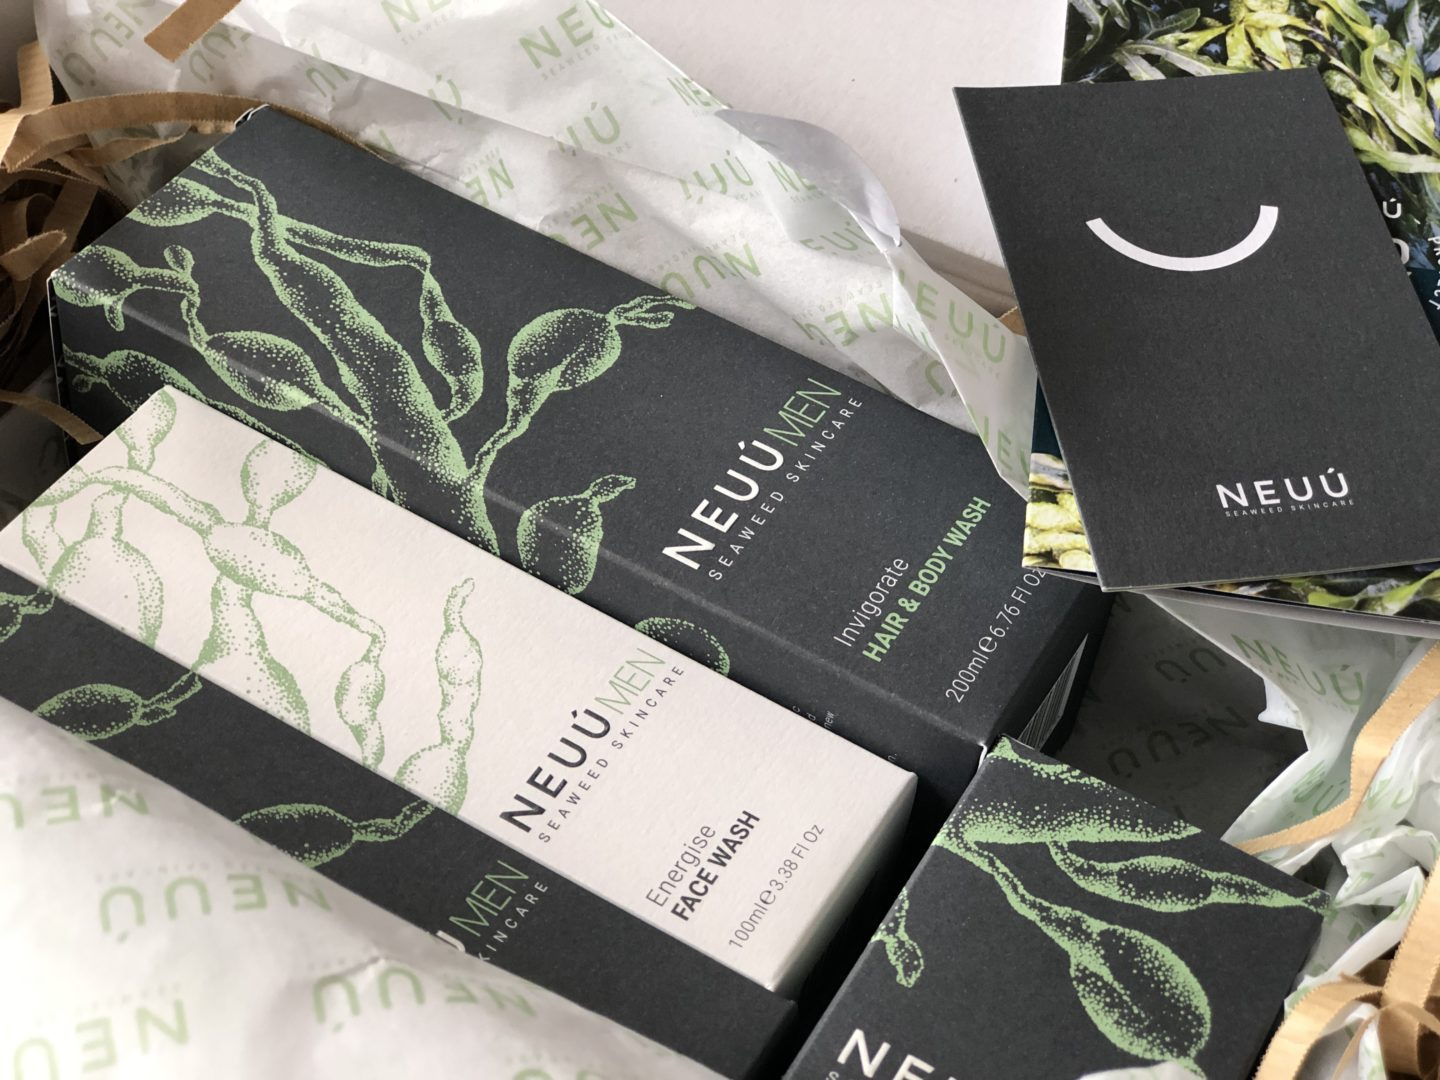 NEUÚ SEAWEED SKINCARE FOR MEN - packaged really beautifully